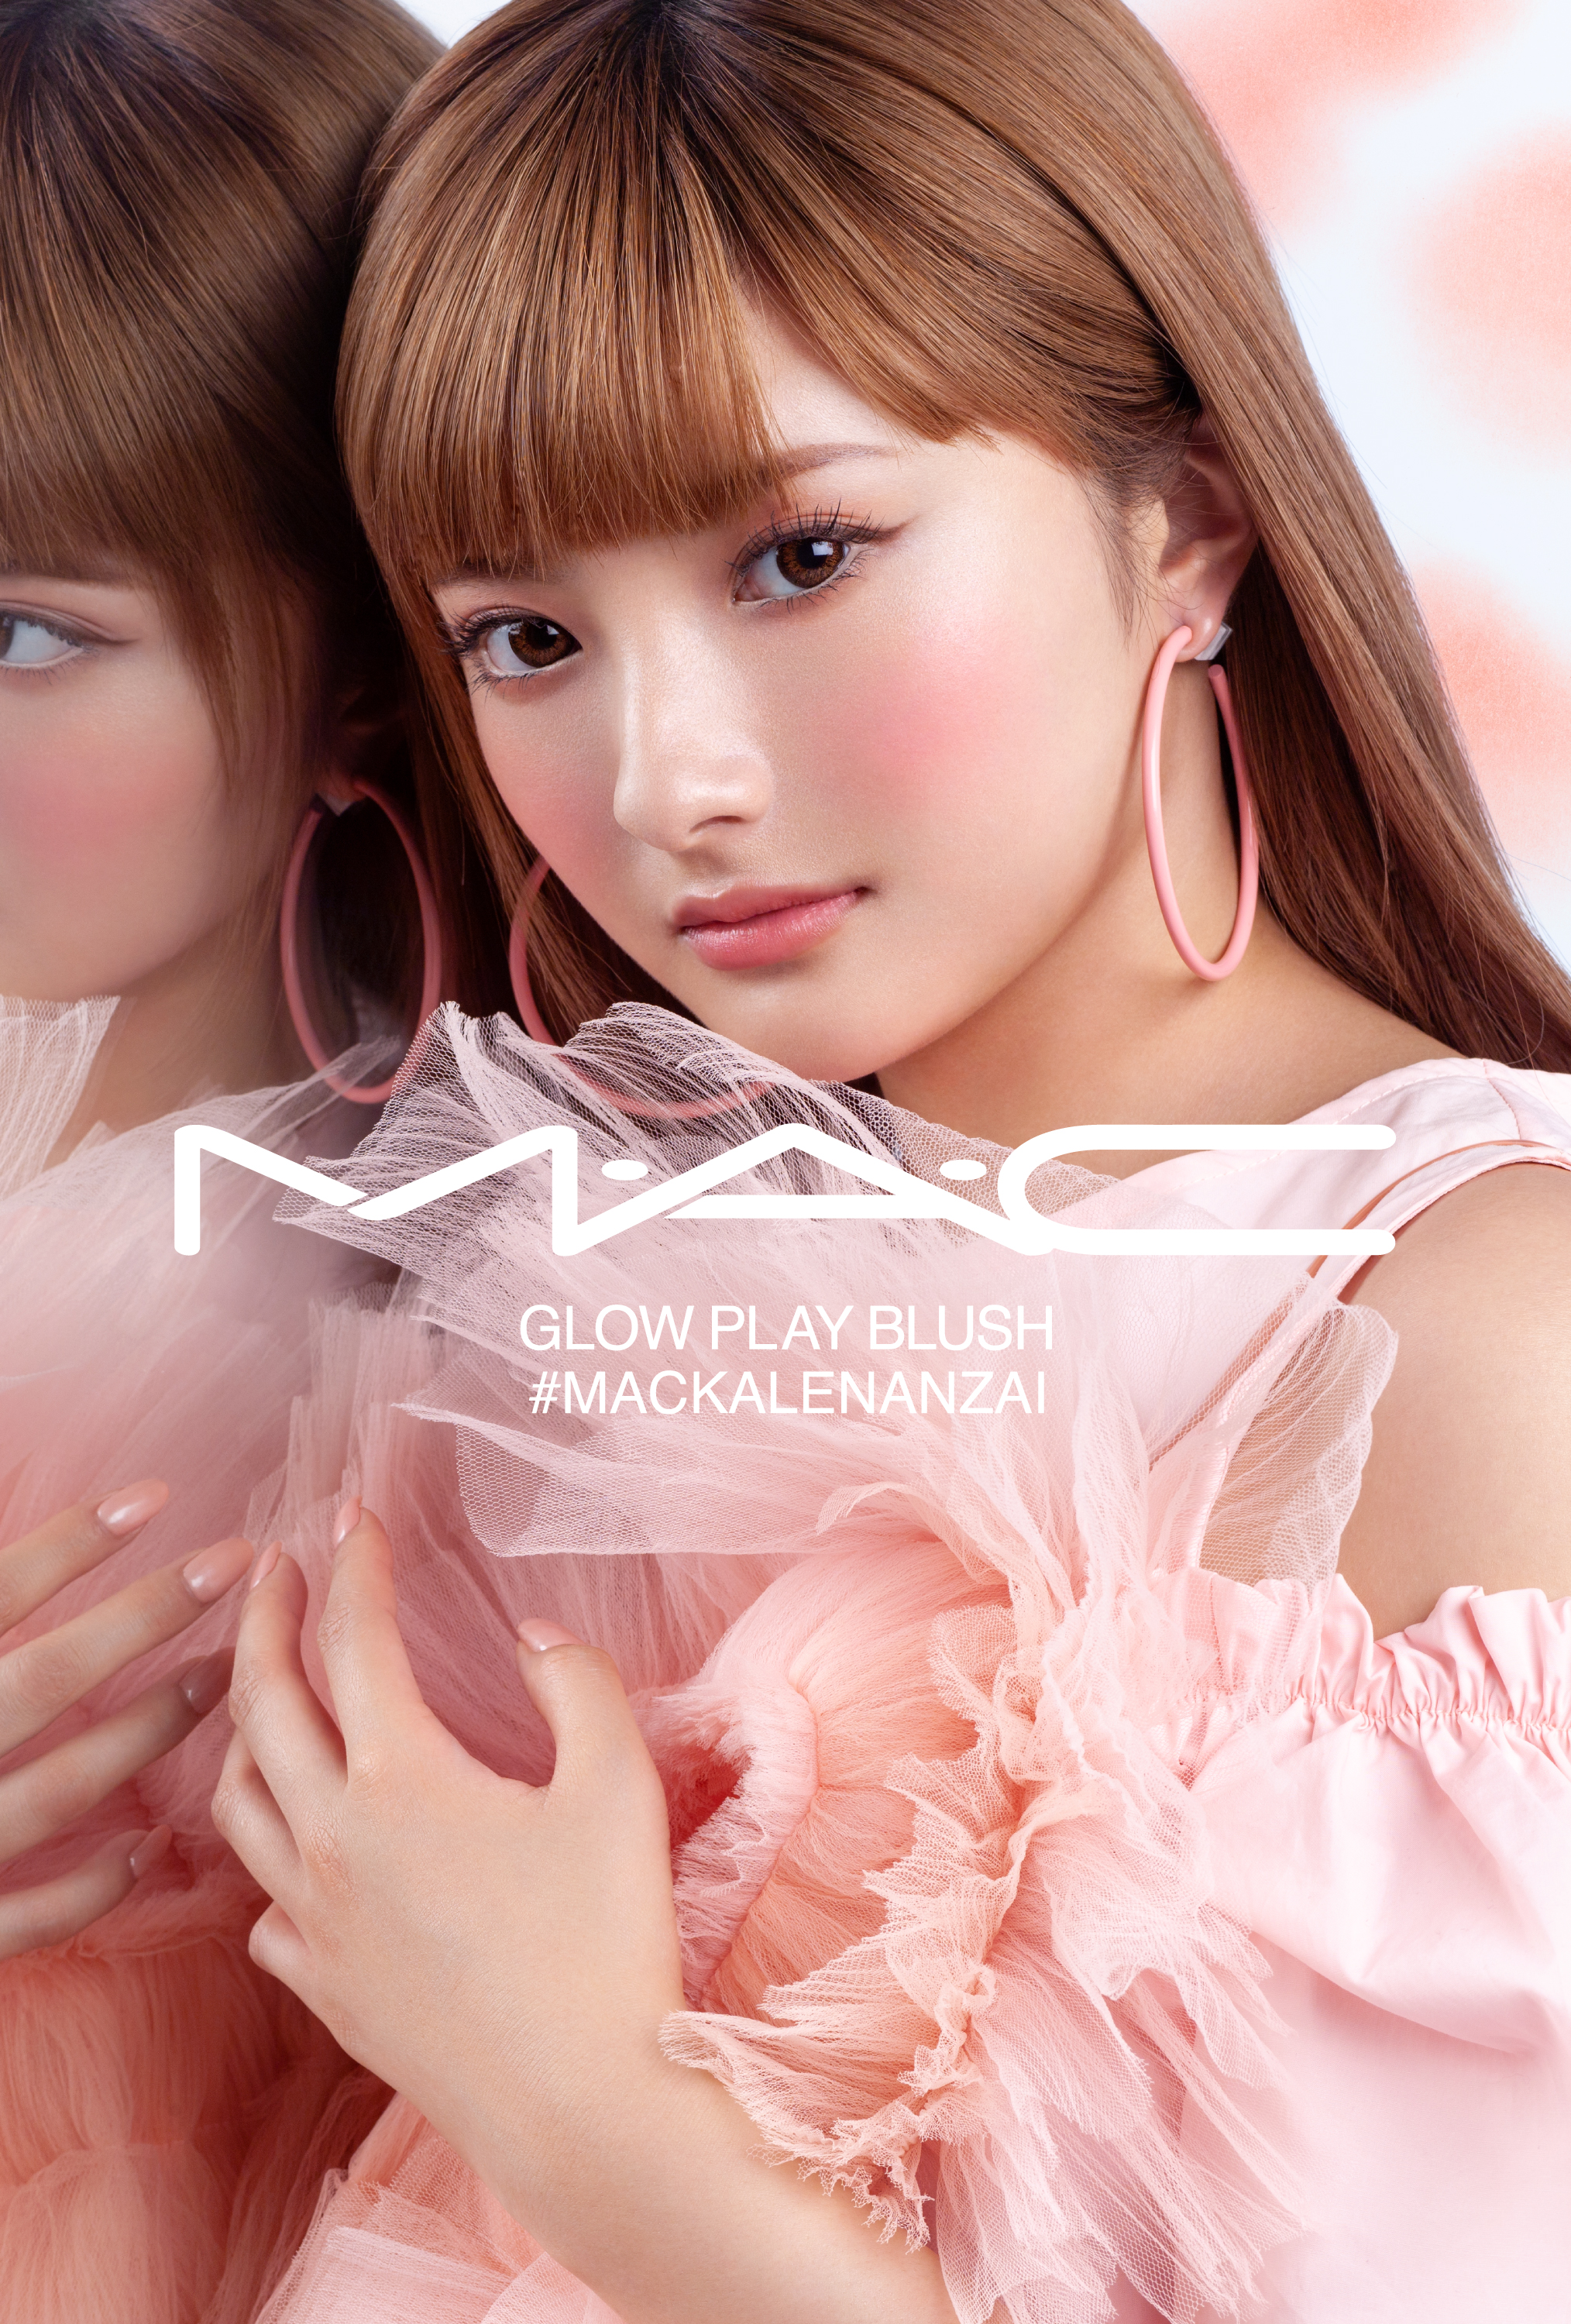 MAC_GLOW PLAY BLUSH